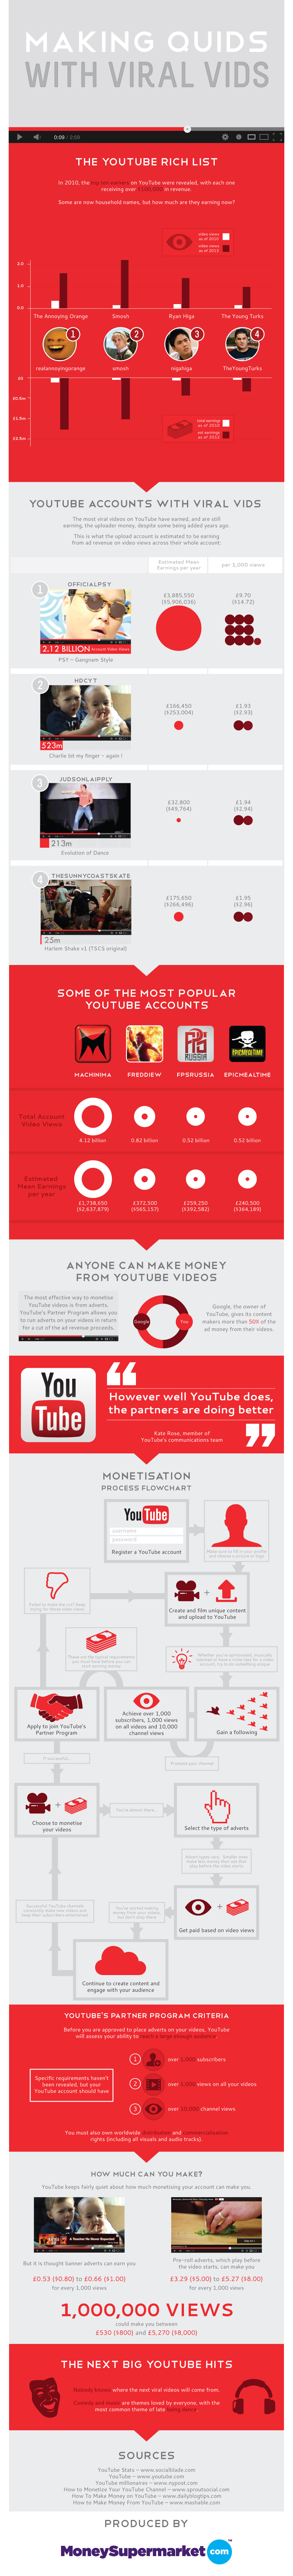 making-money with youtube